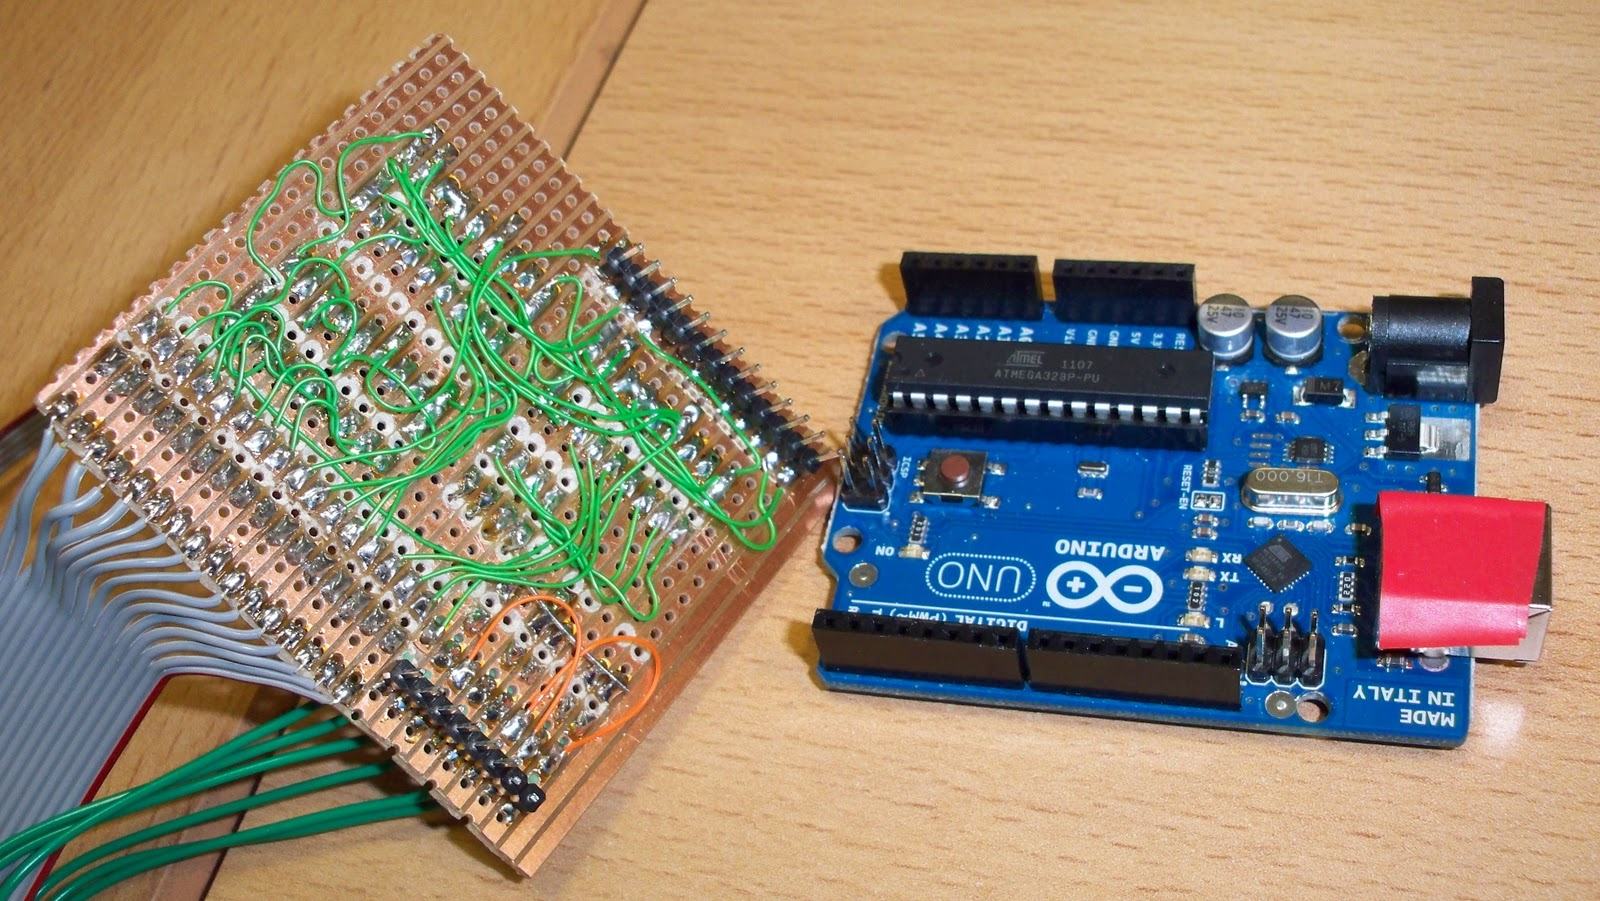 Monpjc the engineer arduino project responce game